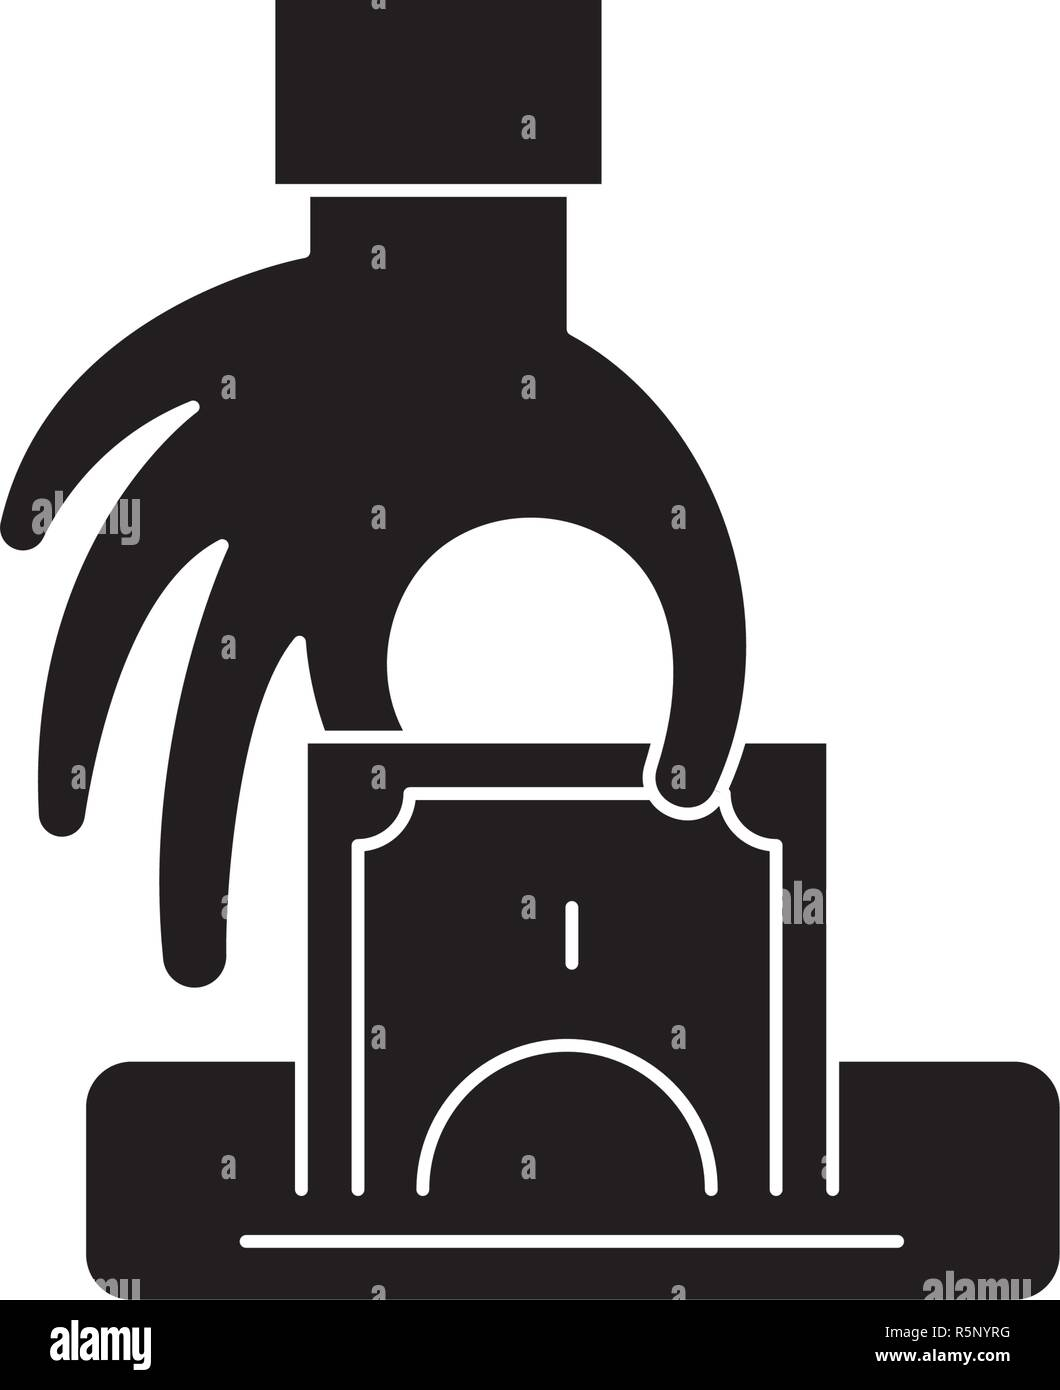 Theft black icon, vector sign on isolated background. Theft concept symbol, illustration  - Stock Vector